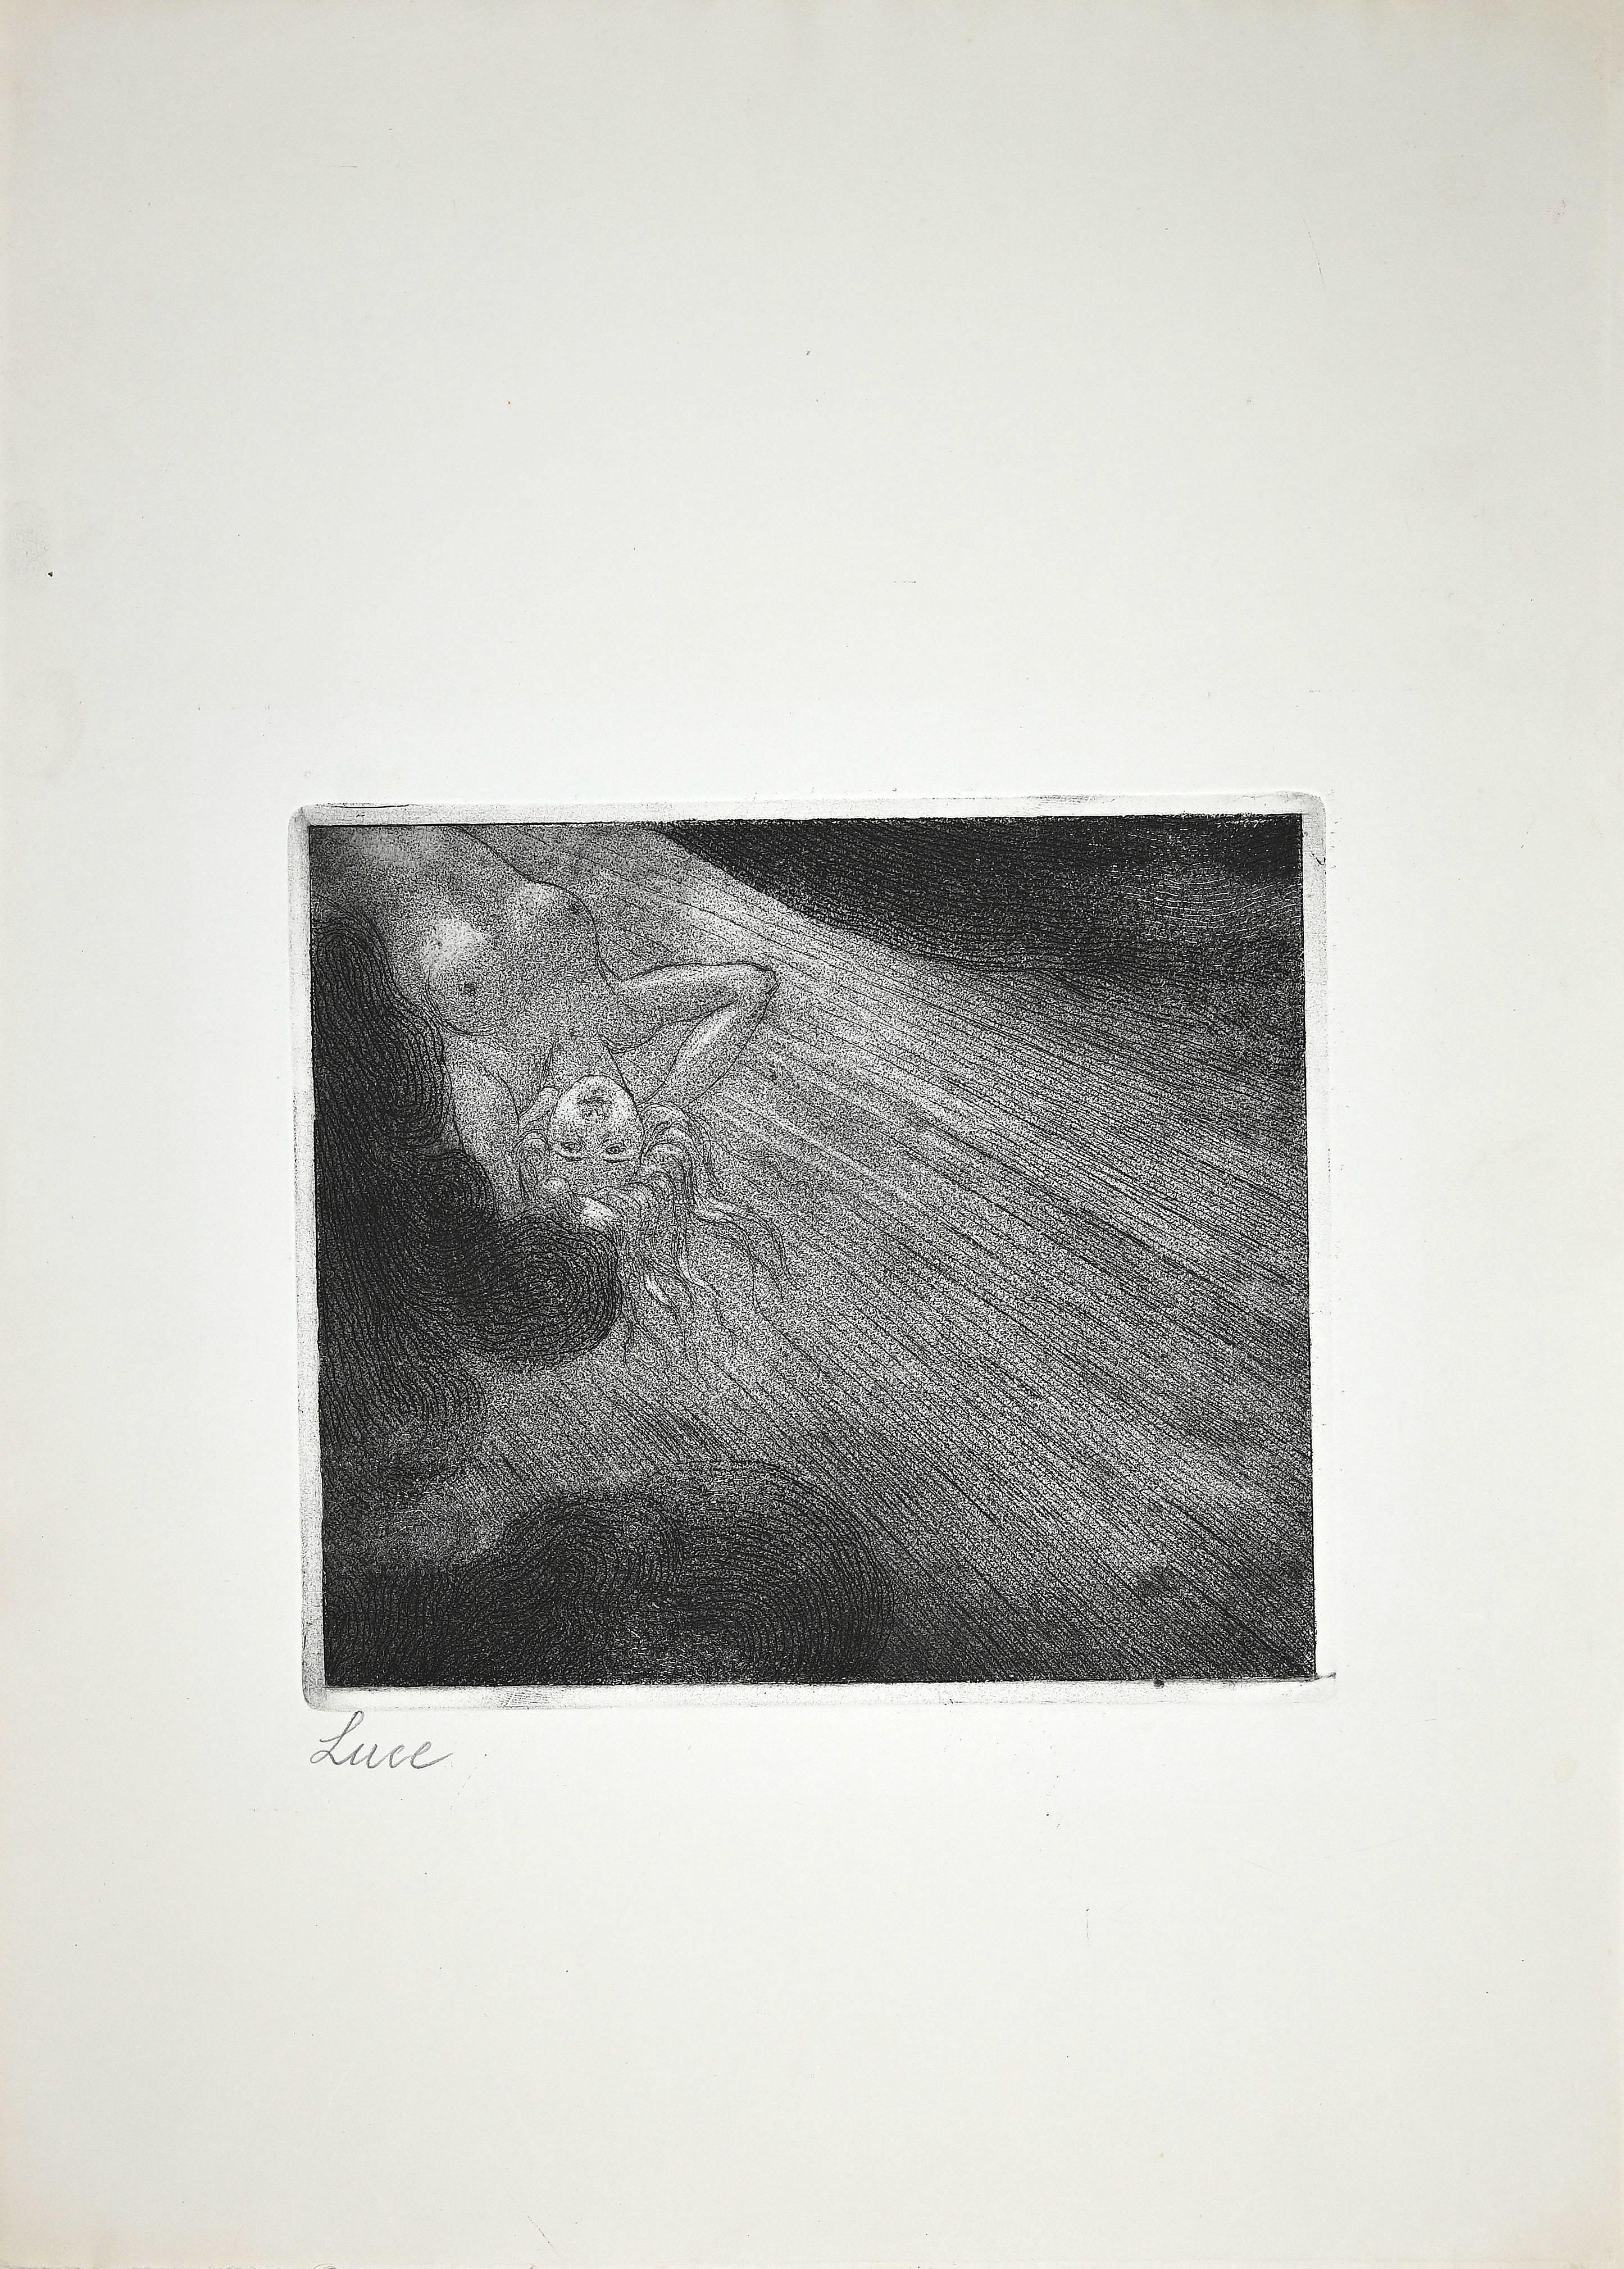 Luce - Original Etching by Luigi Russolo - Early 20th Century